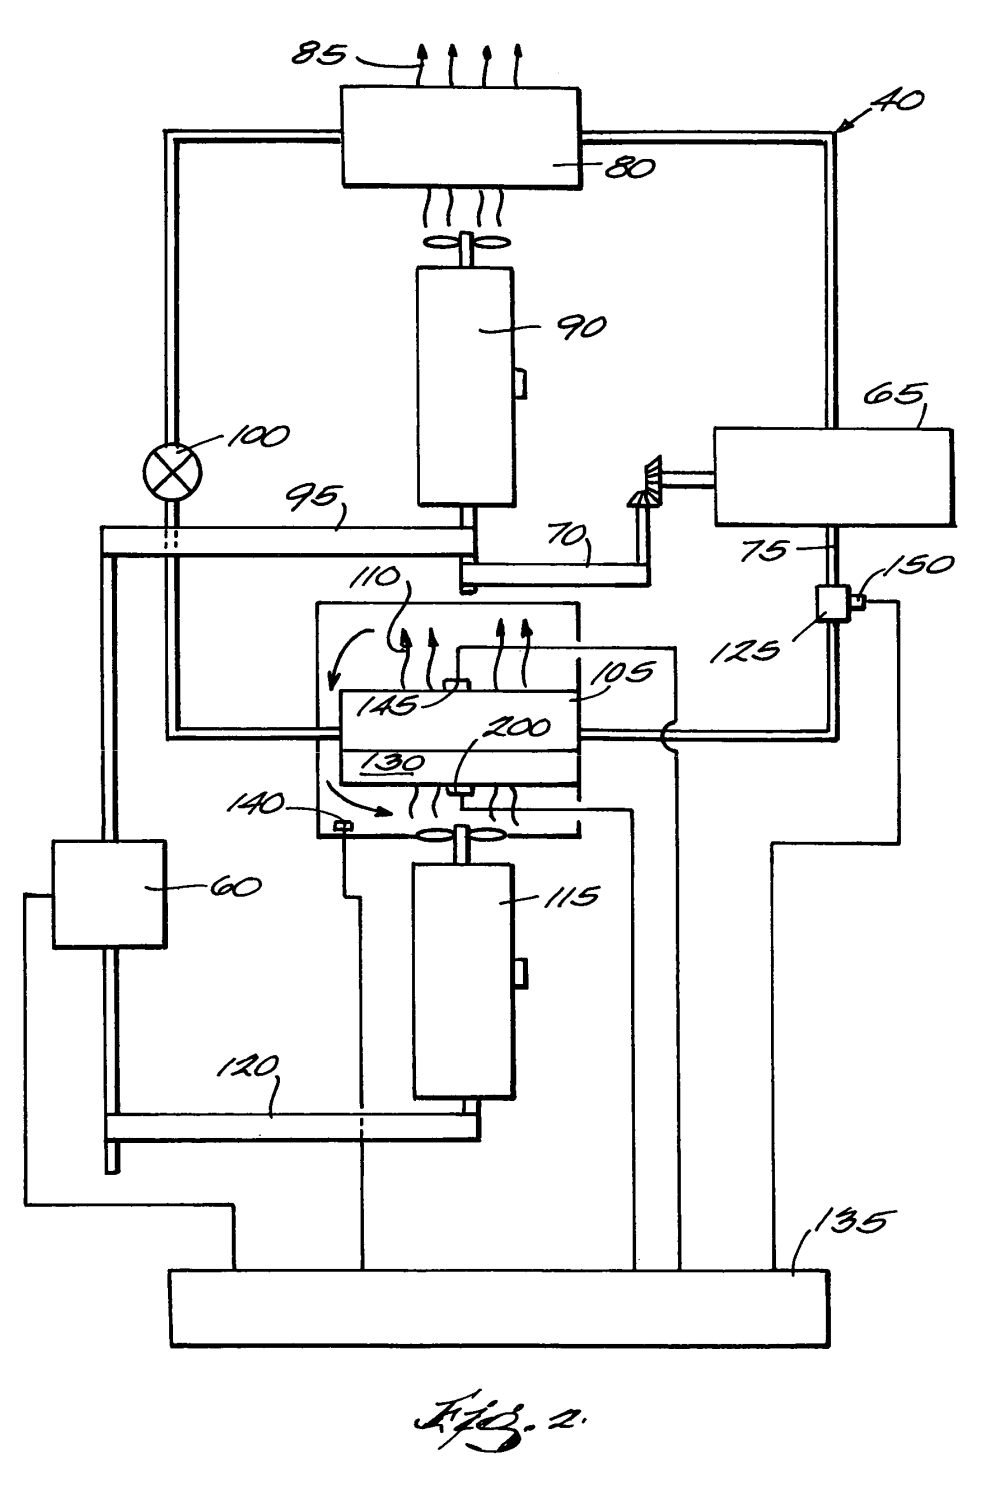 medium resolution of us07266961 20070911 d00002 patent us7266961 mobile refrigeration system and control thermo king v500 wiring diagram at